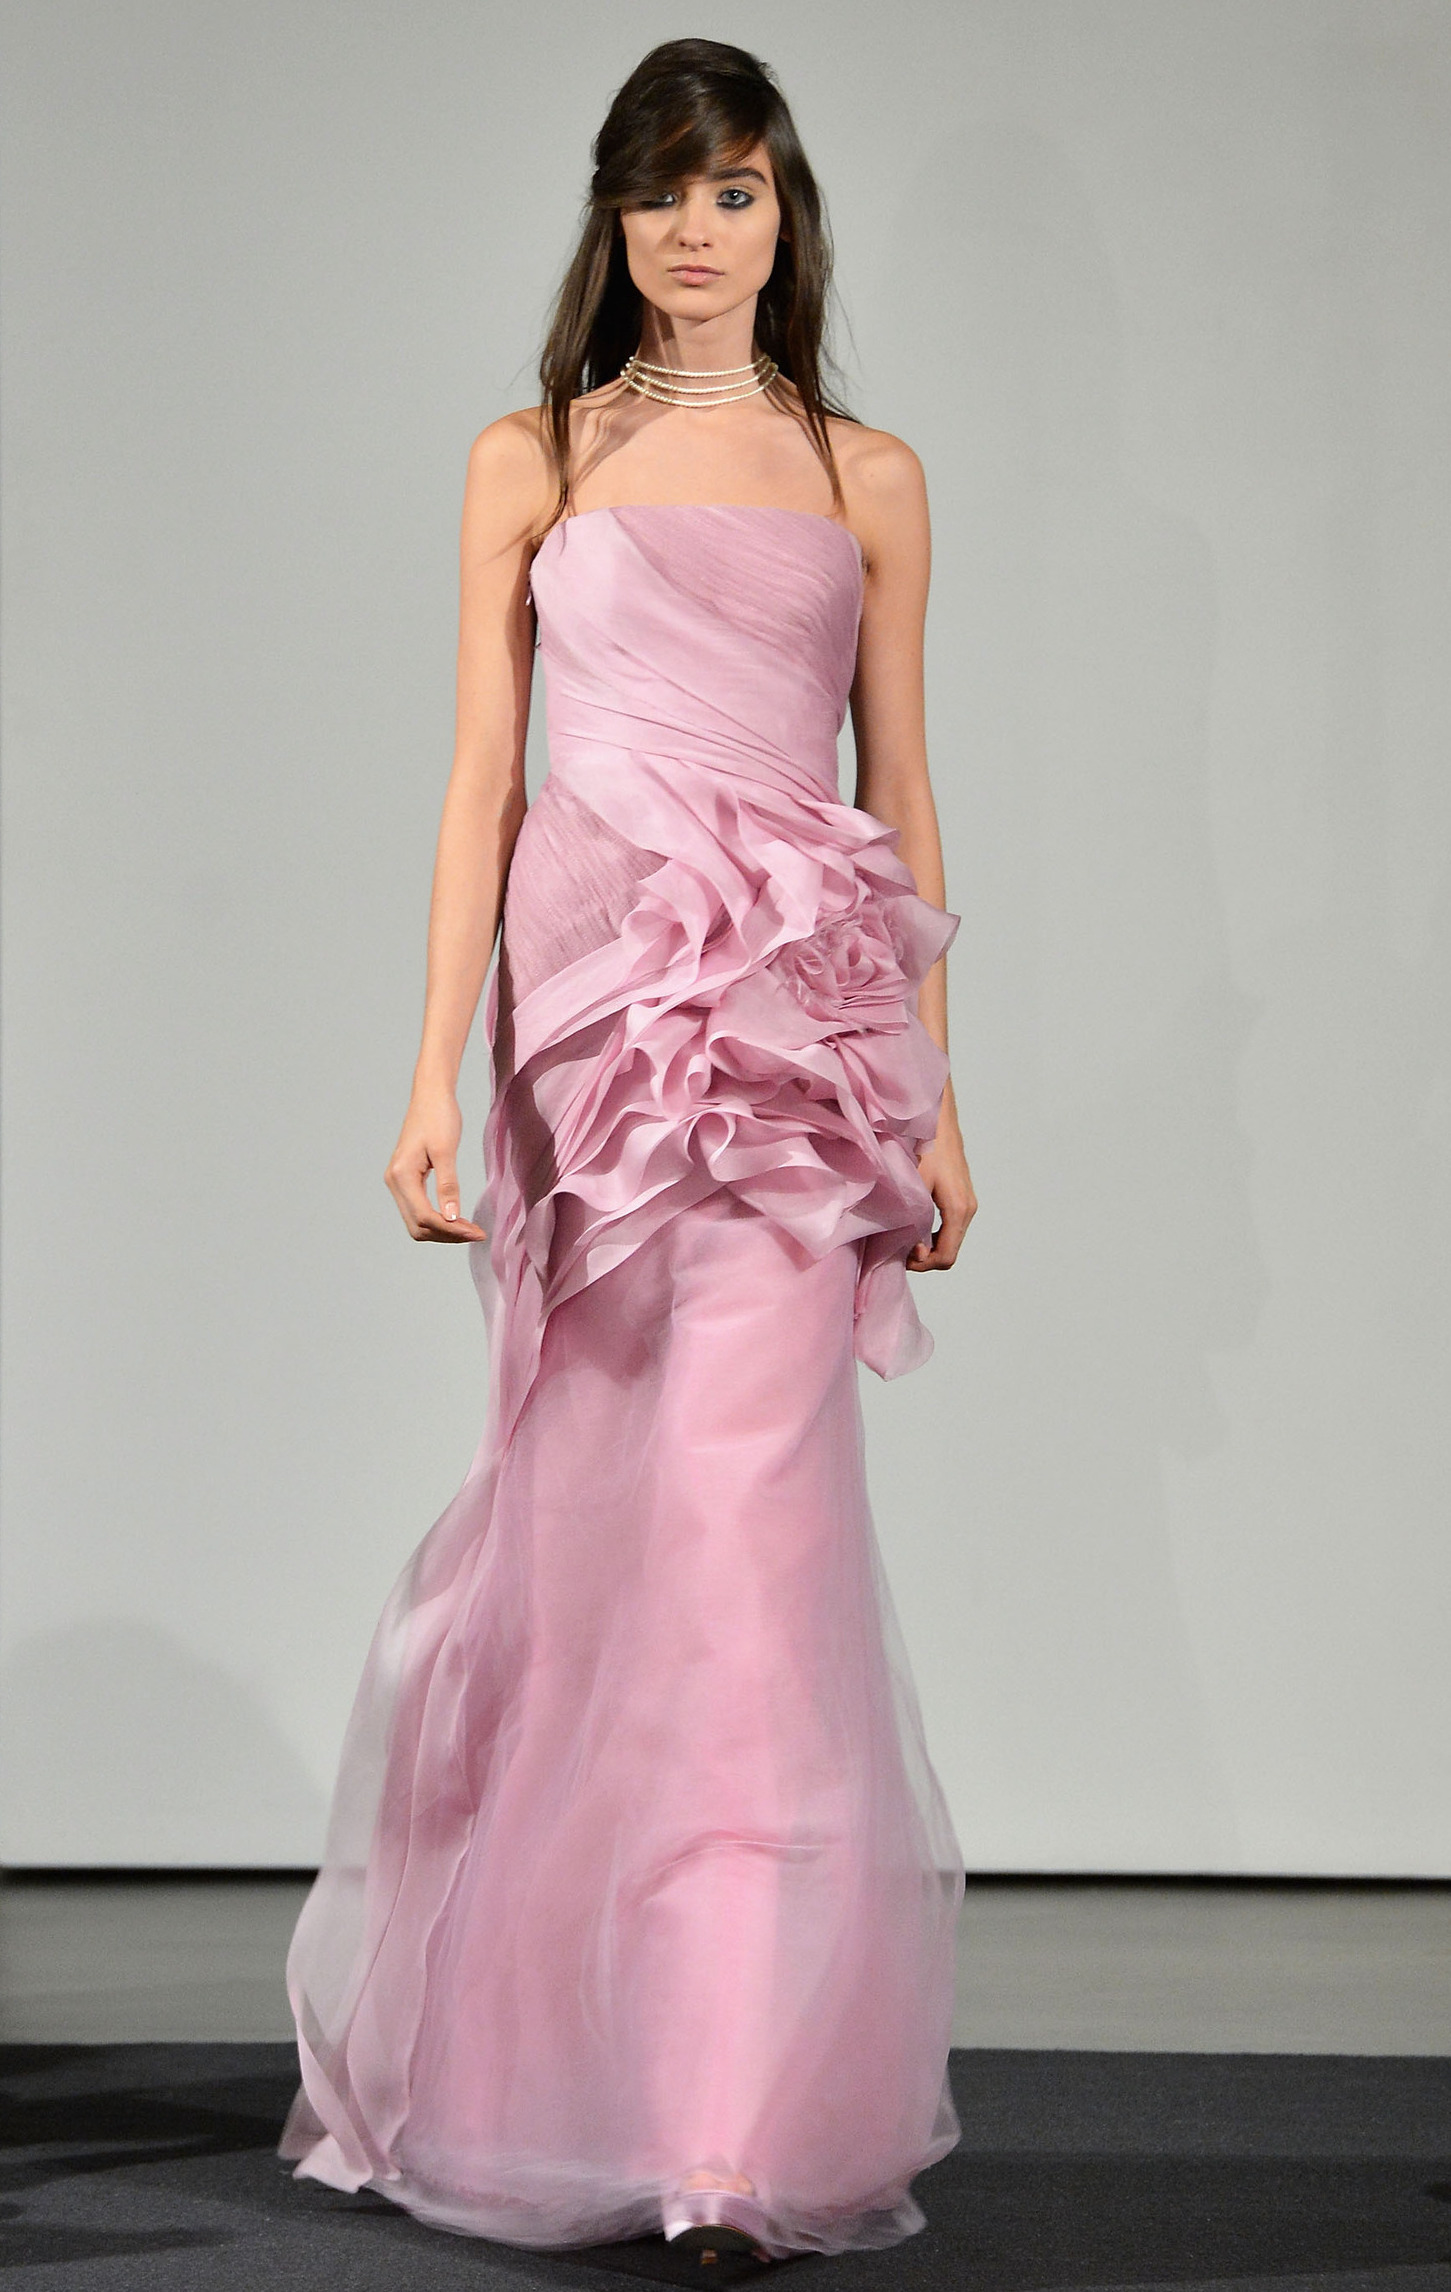 Fall bridal 2014: Only Vera Wang could send all PINK gowns down the ...